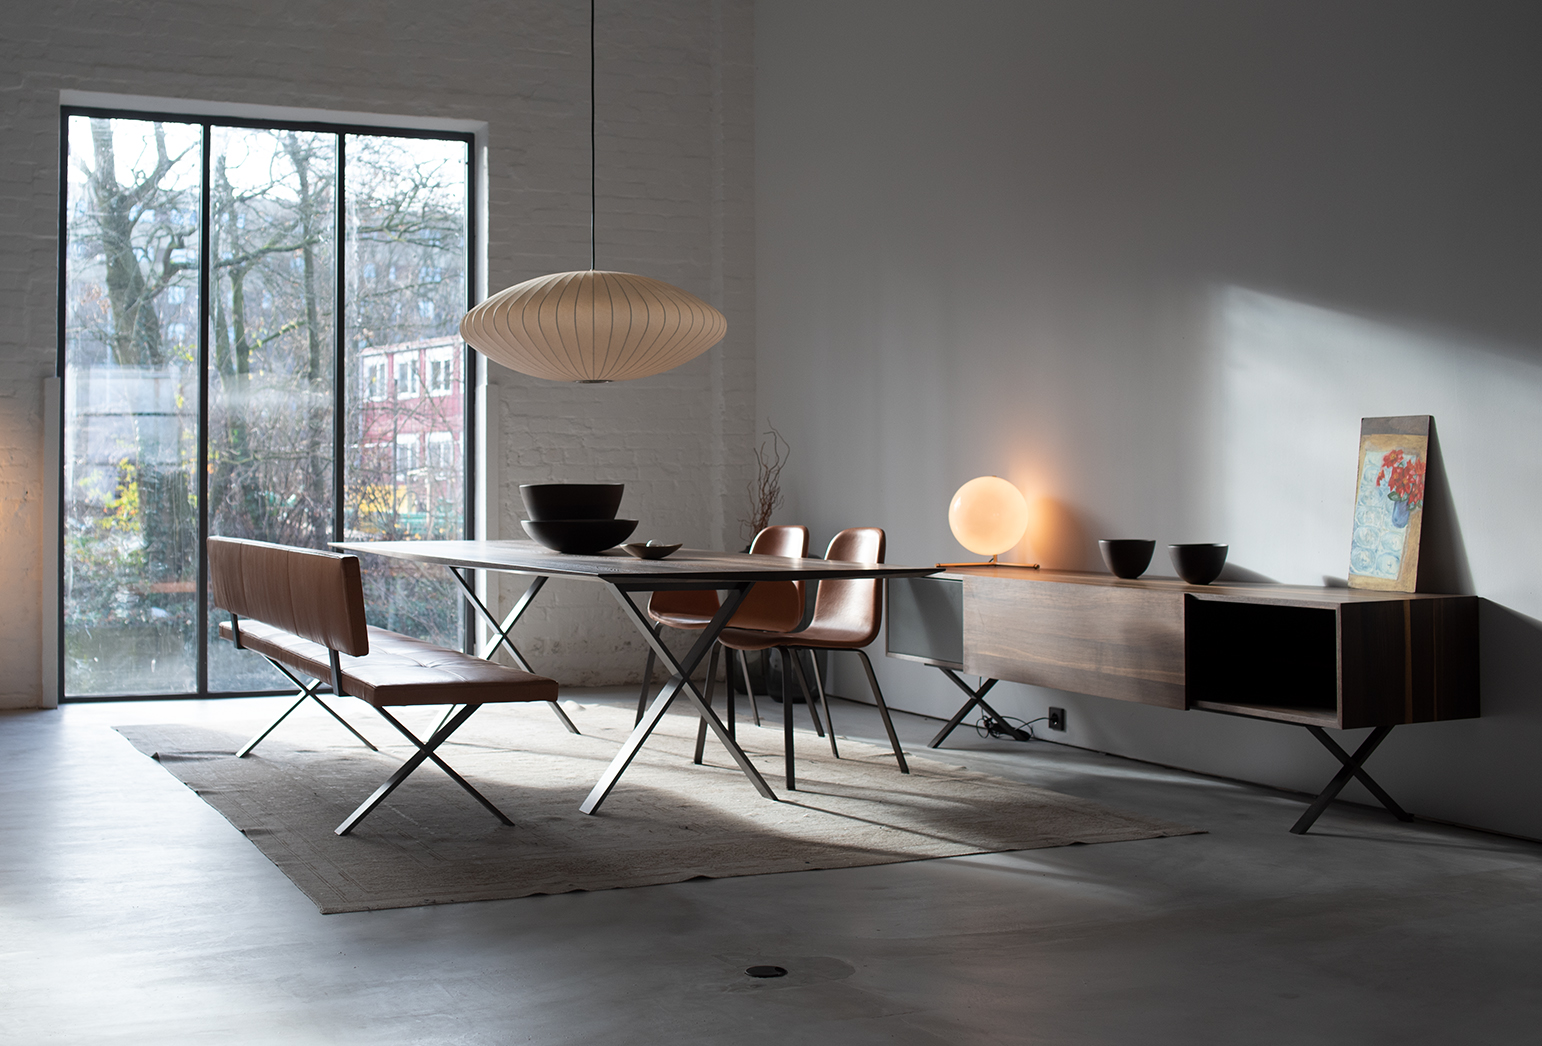 more - timeless furniture from hamburg